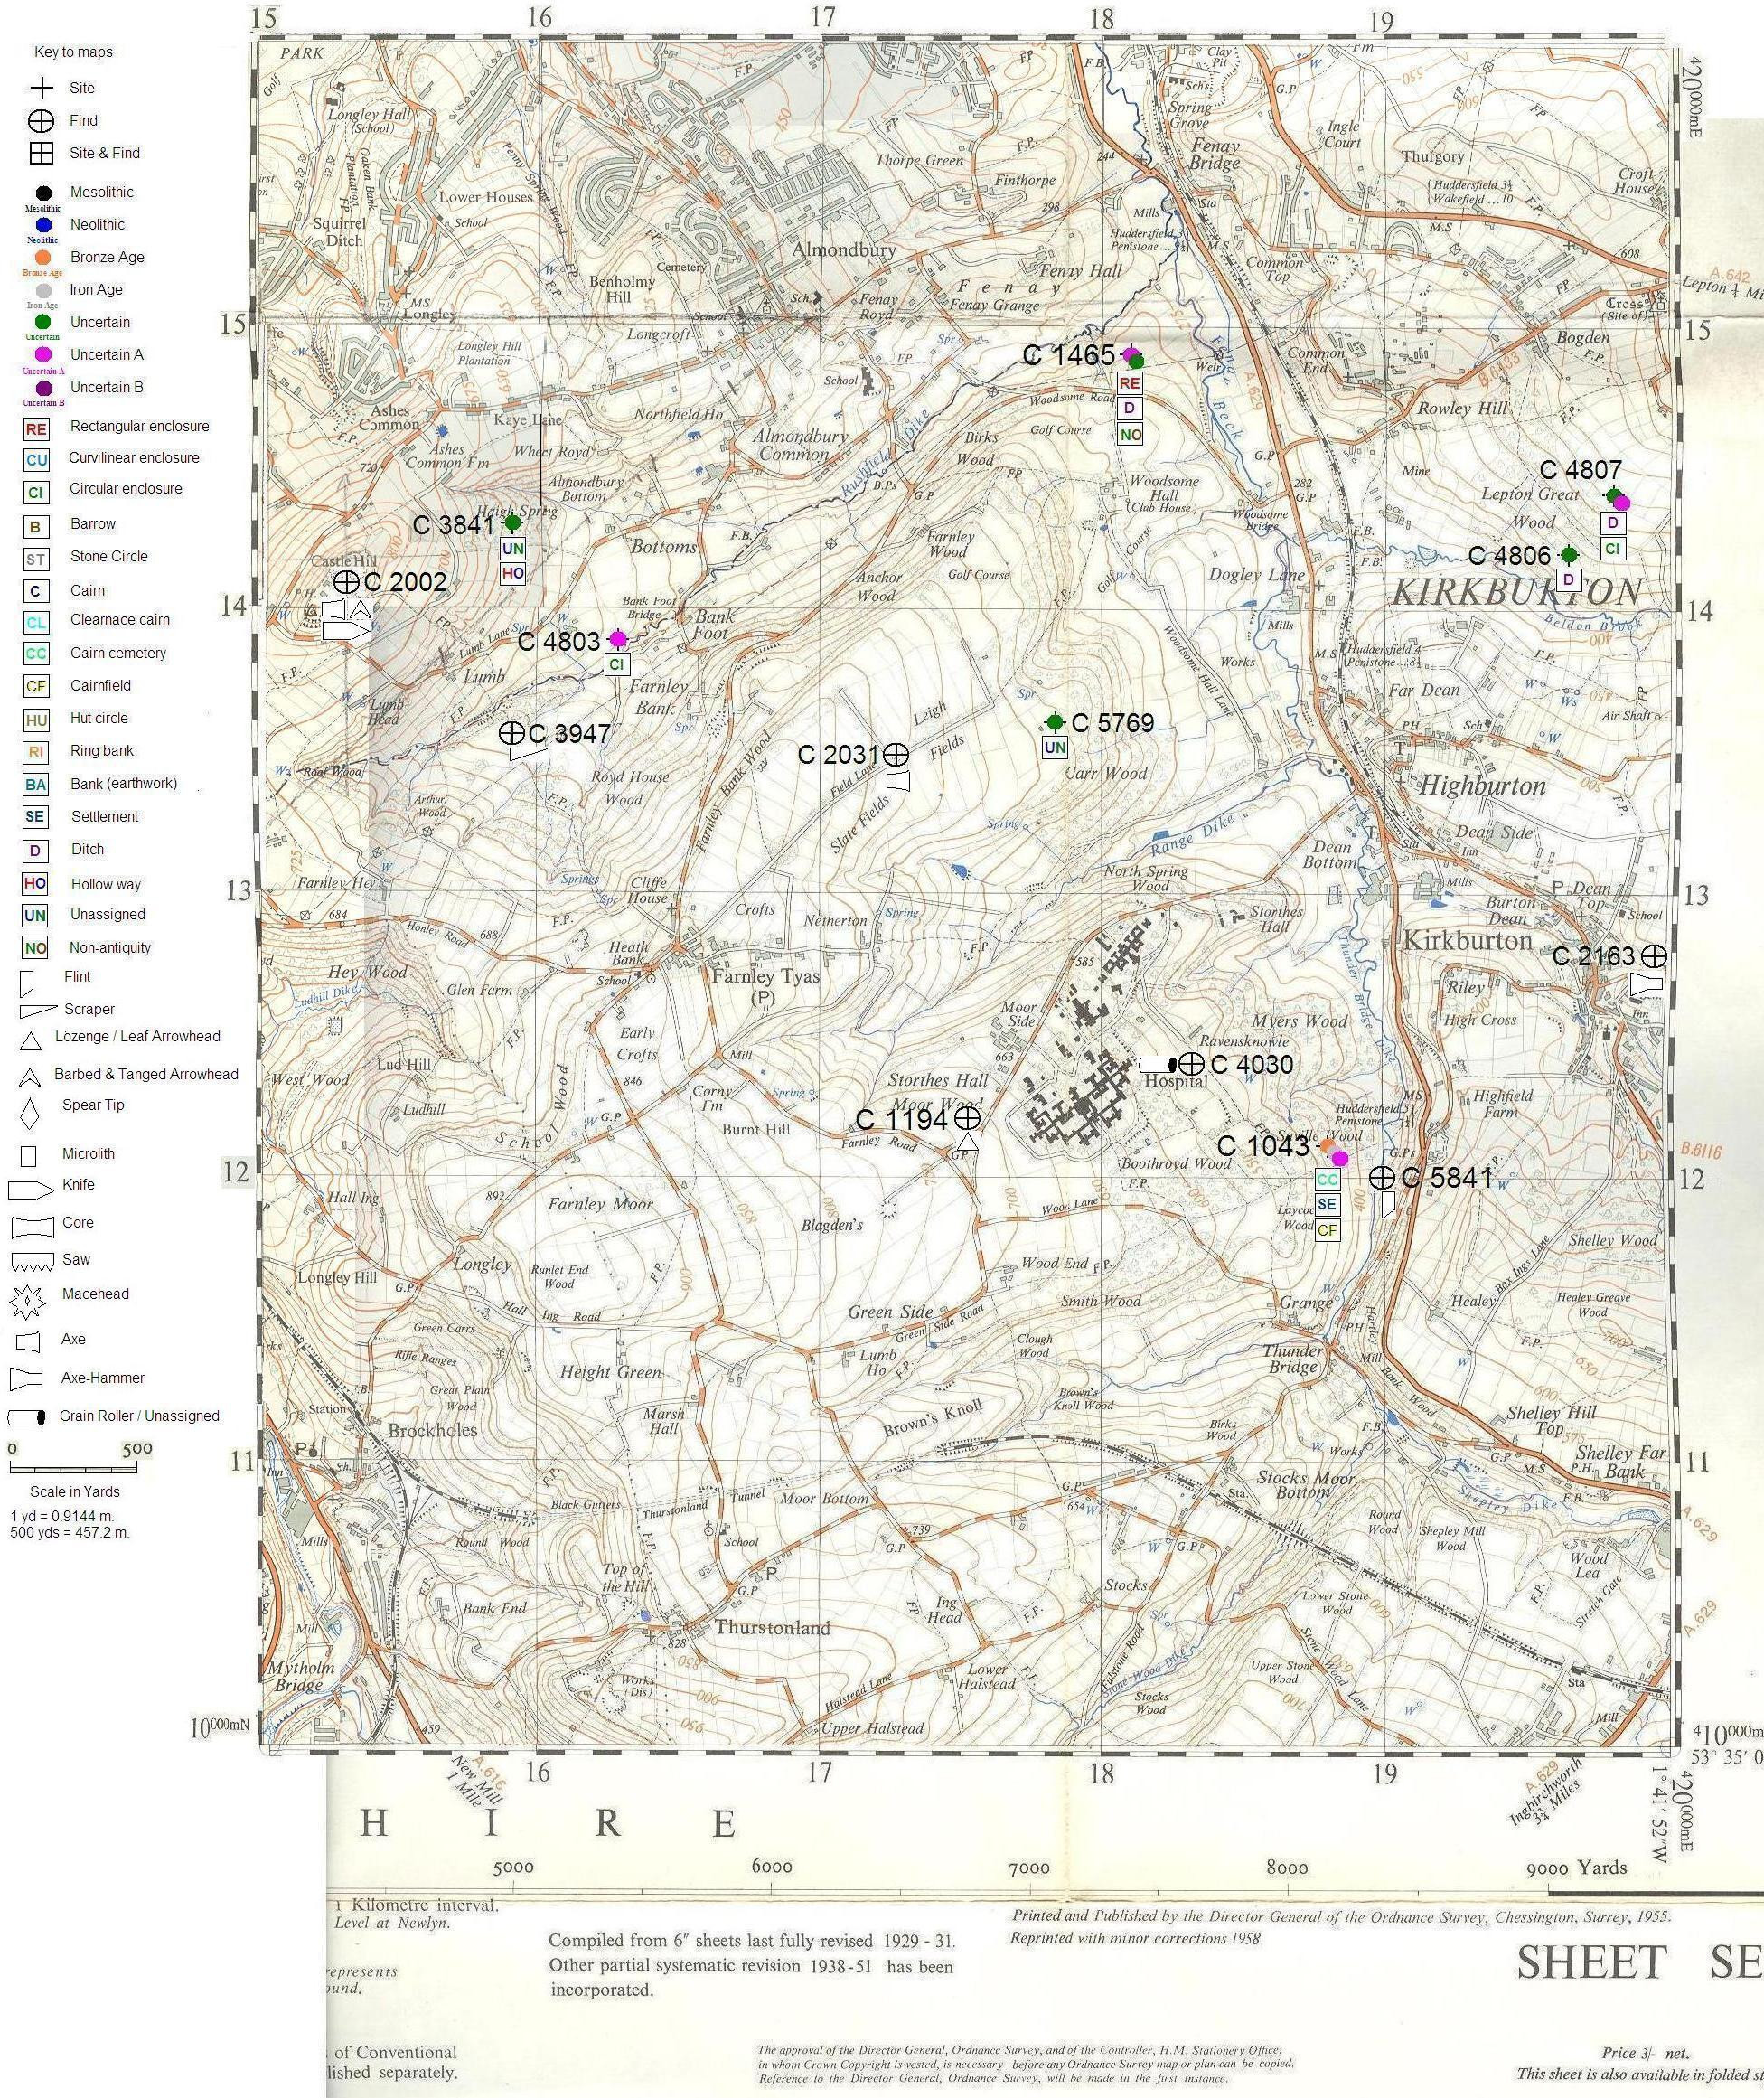 Yorkshire 3 Peaks Printable Map Inspirational An Investigation Of Prehistoric Settlement Patterns In The